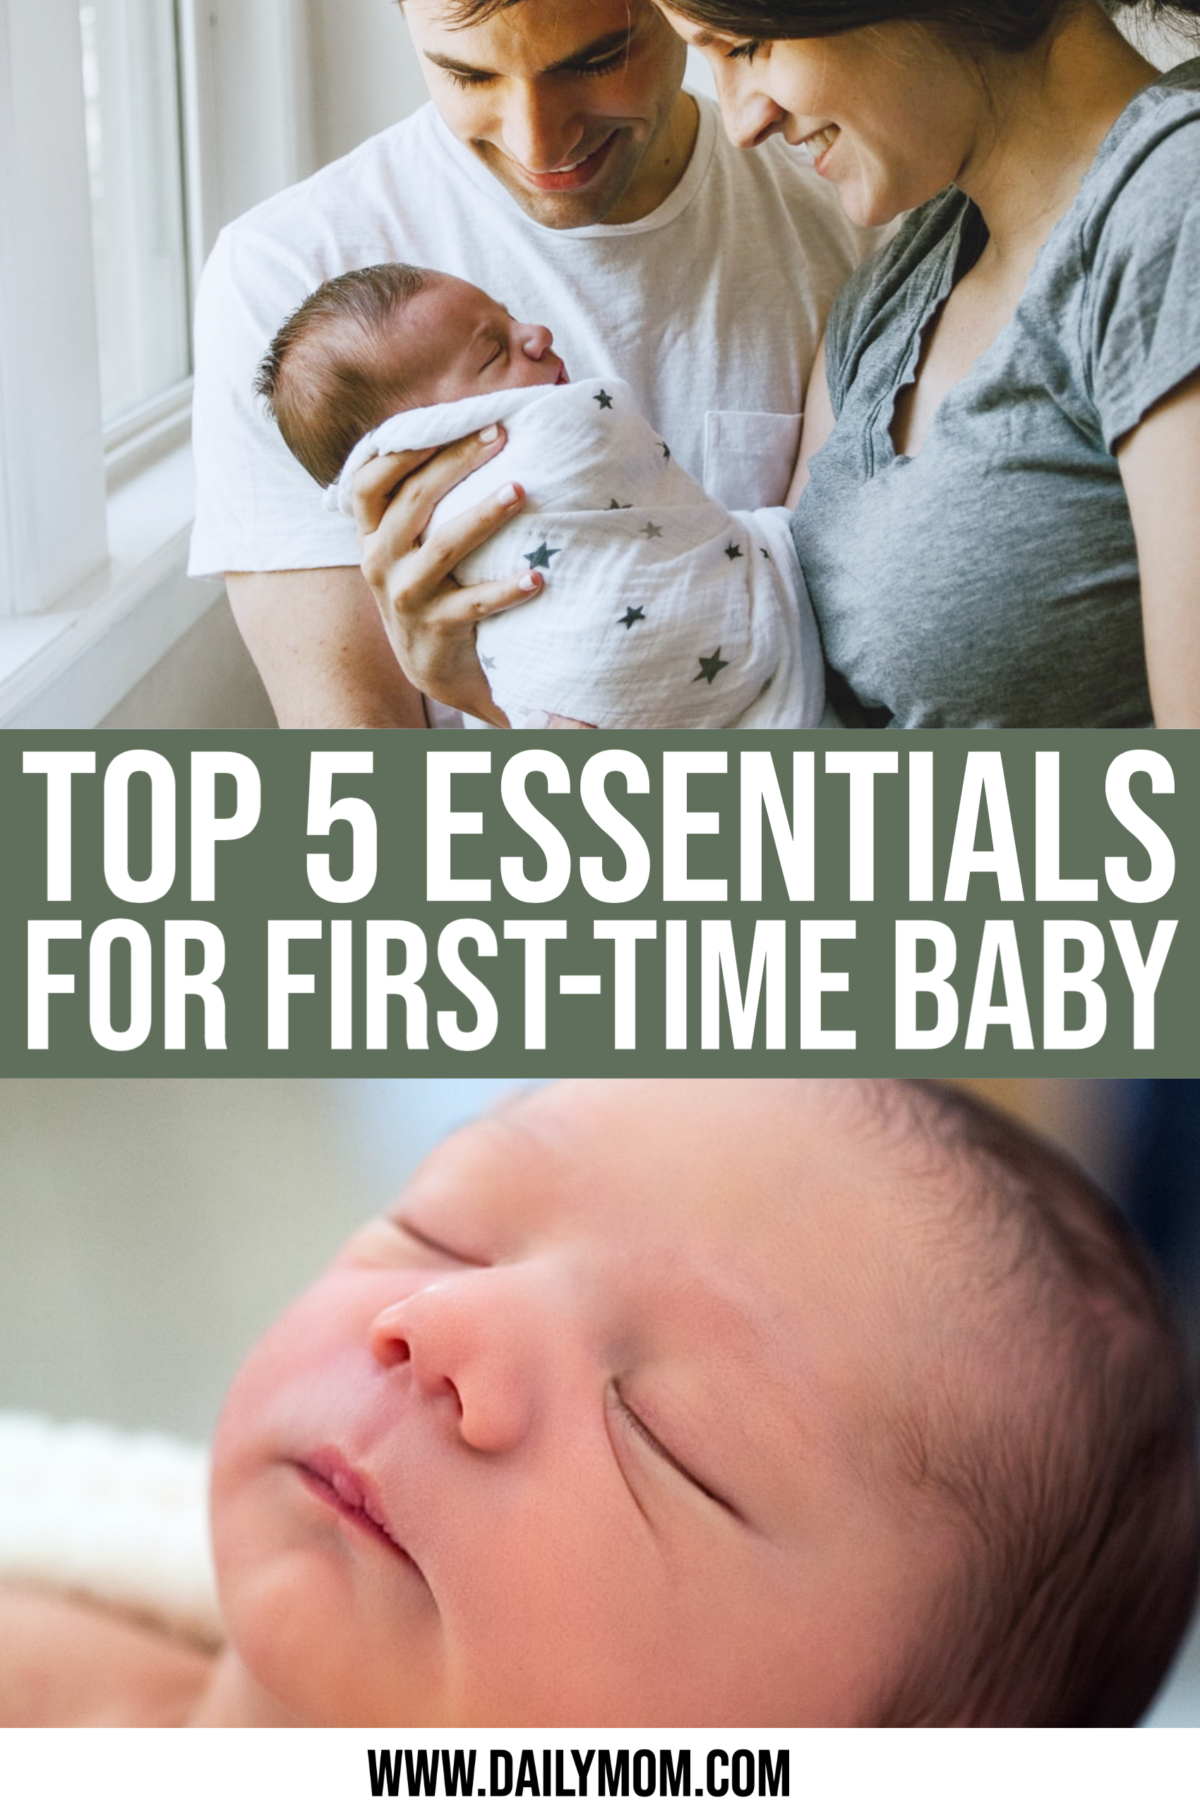 Baby Essentials: Top 5 Essentials For First Time Baby